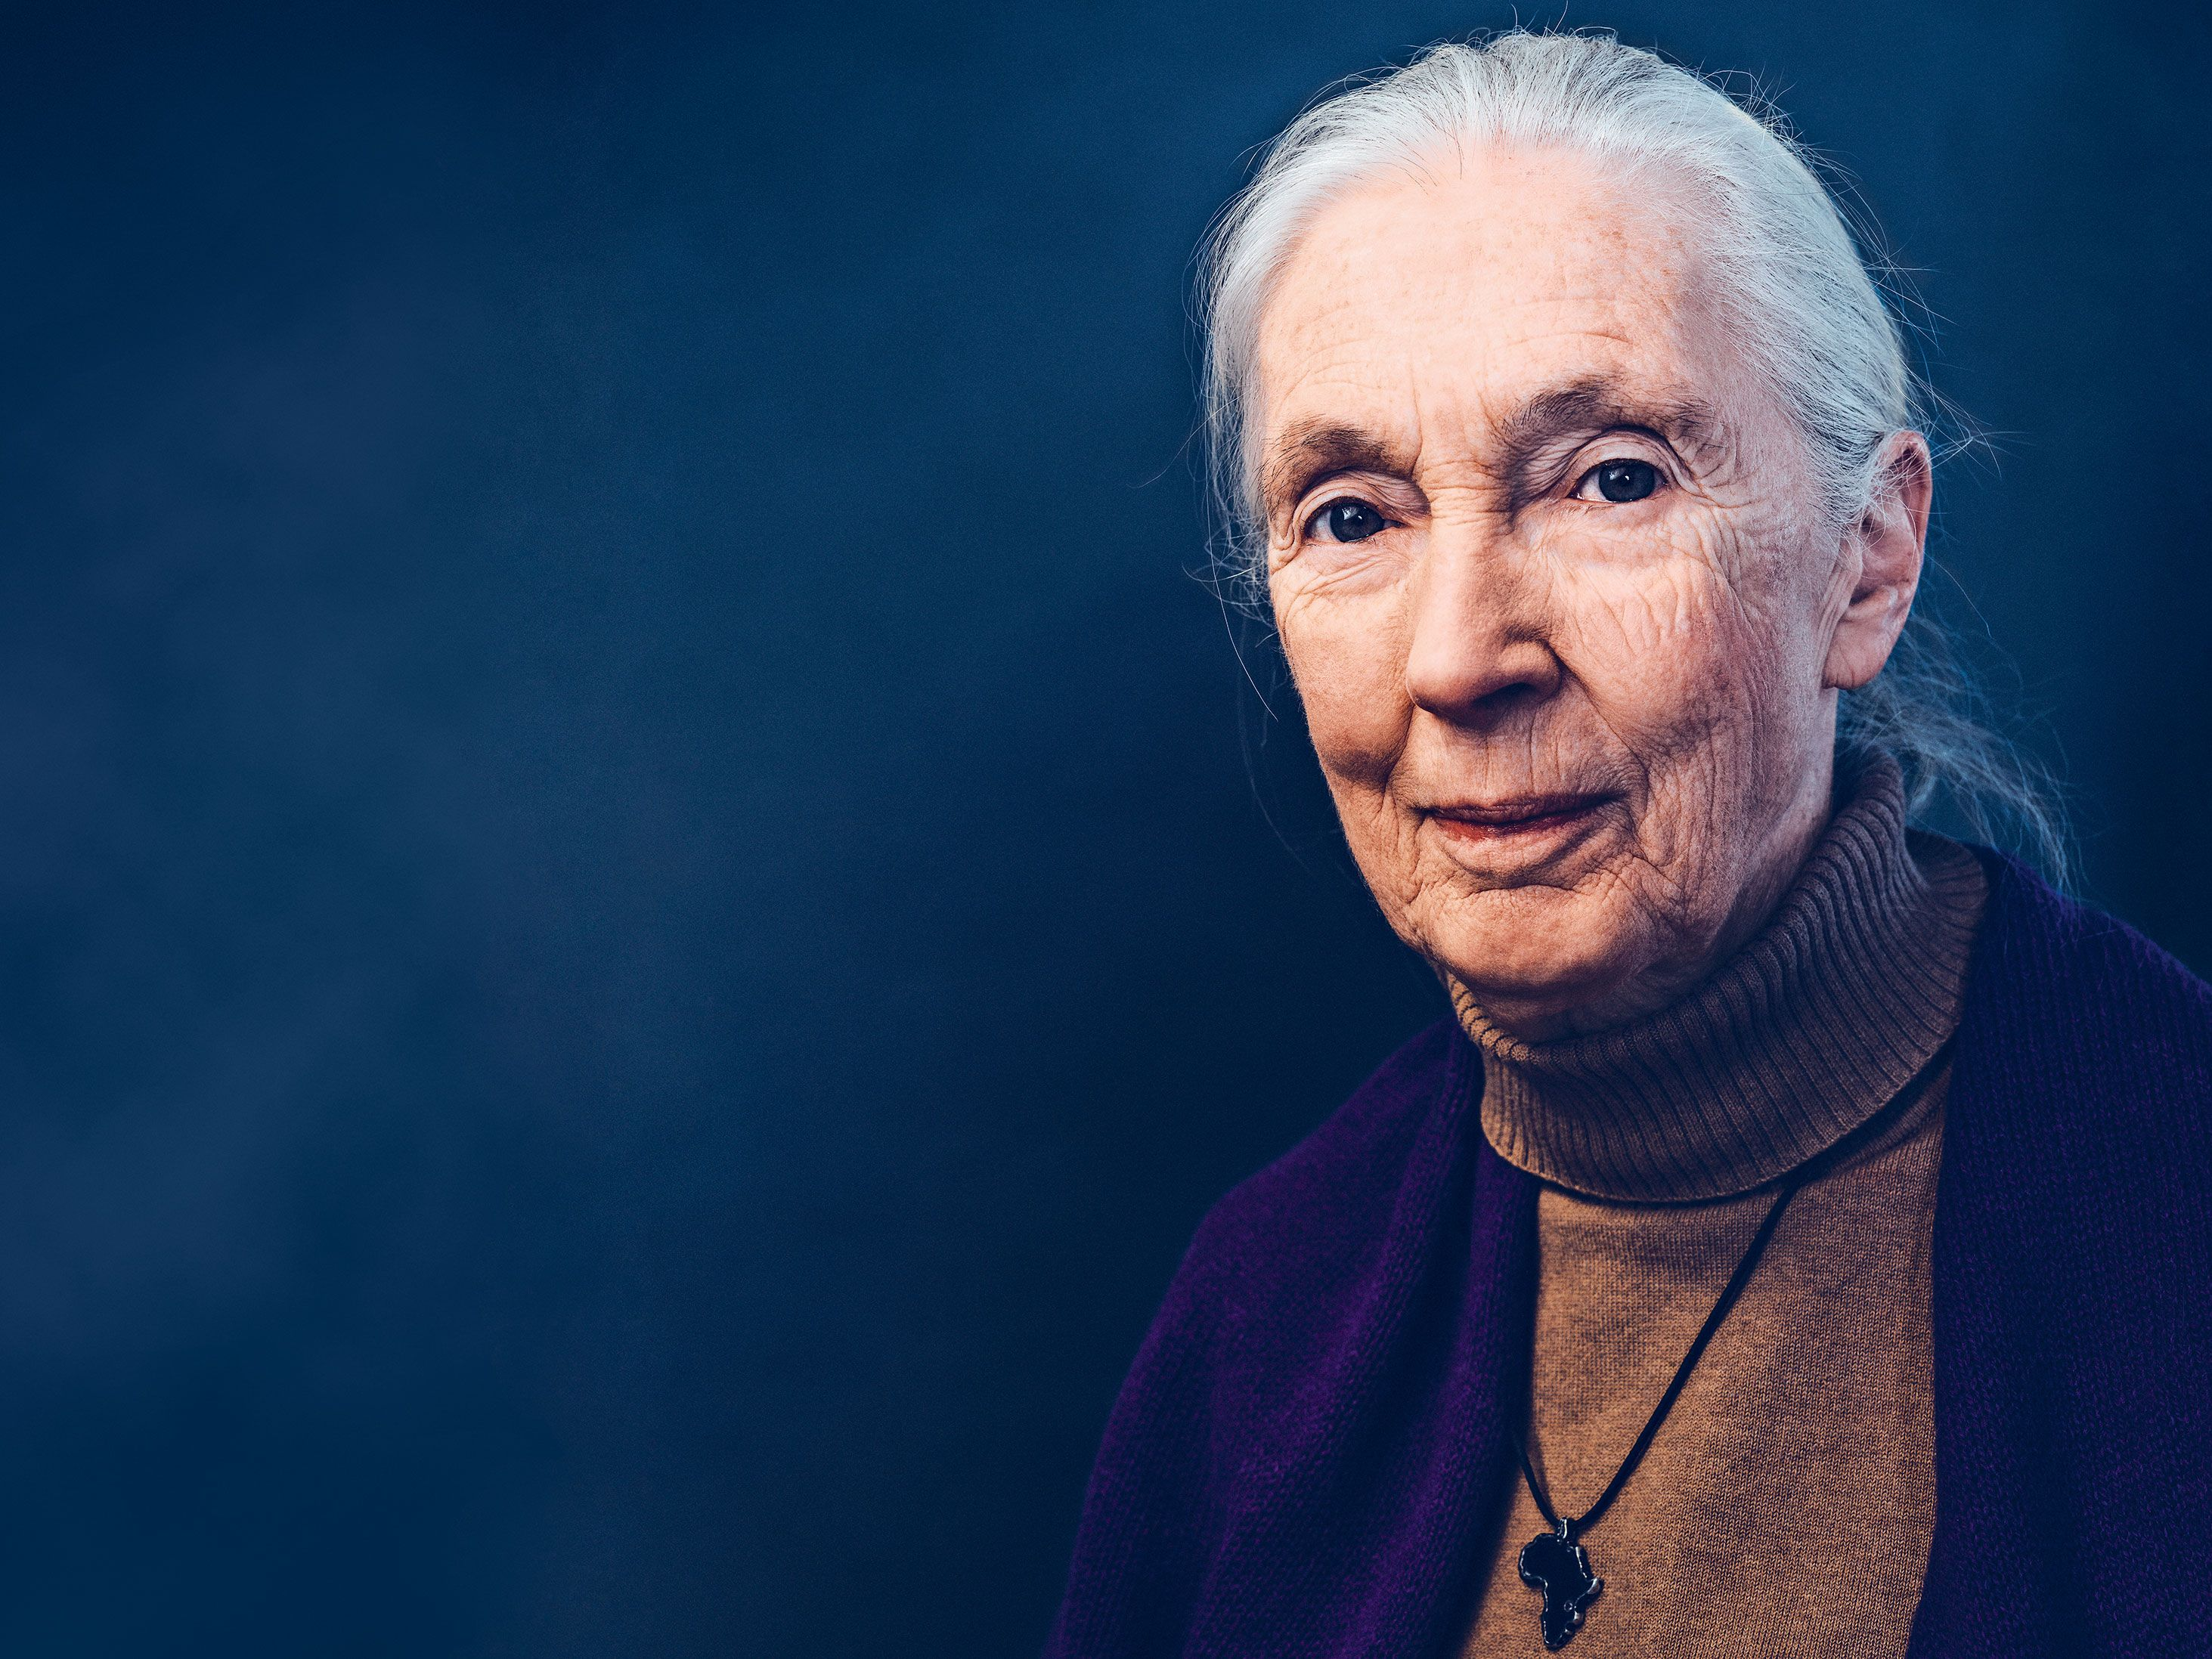 Famed conservationist Jane Goodall speaks with Reader's Digest about apes, aging and her legacy.